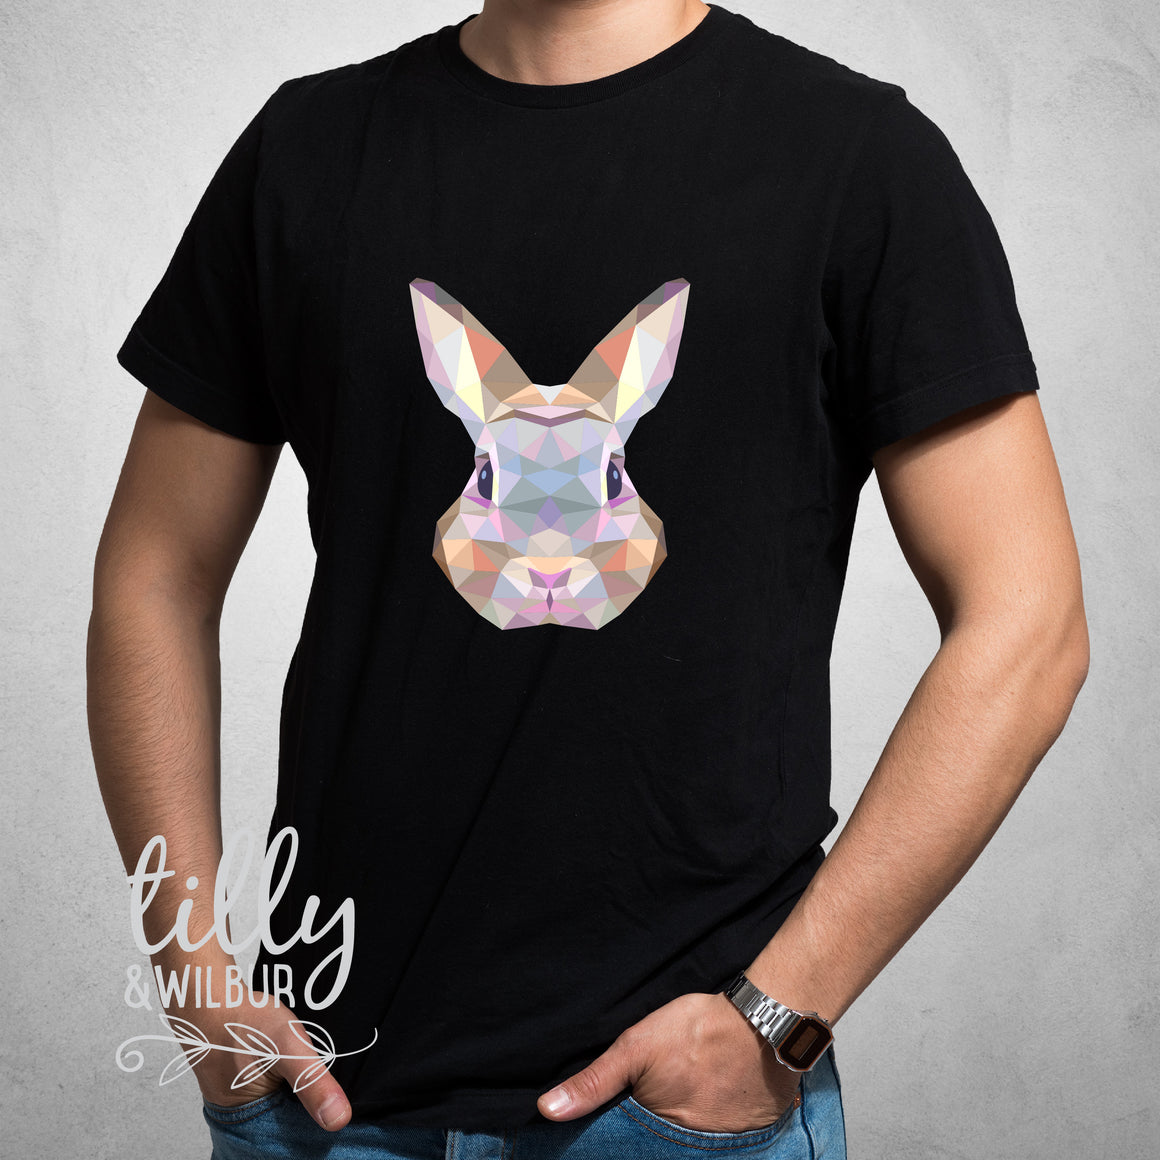 Rabbit Easter T-Shirt For Men, Geometric Rabbit Shirt, Easter T-Shirt, Dad Easter Gift, Men's Easter Shirt, Hip Hop Men's Clothing Bunny